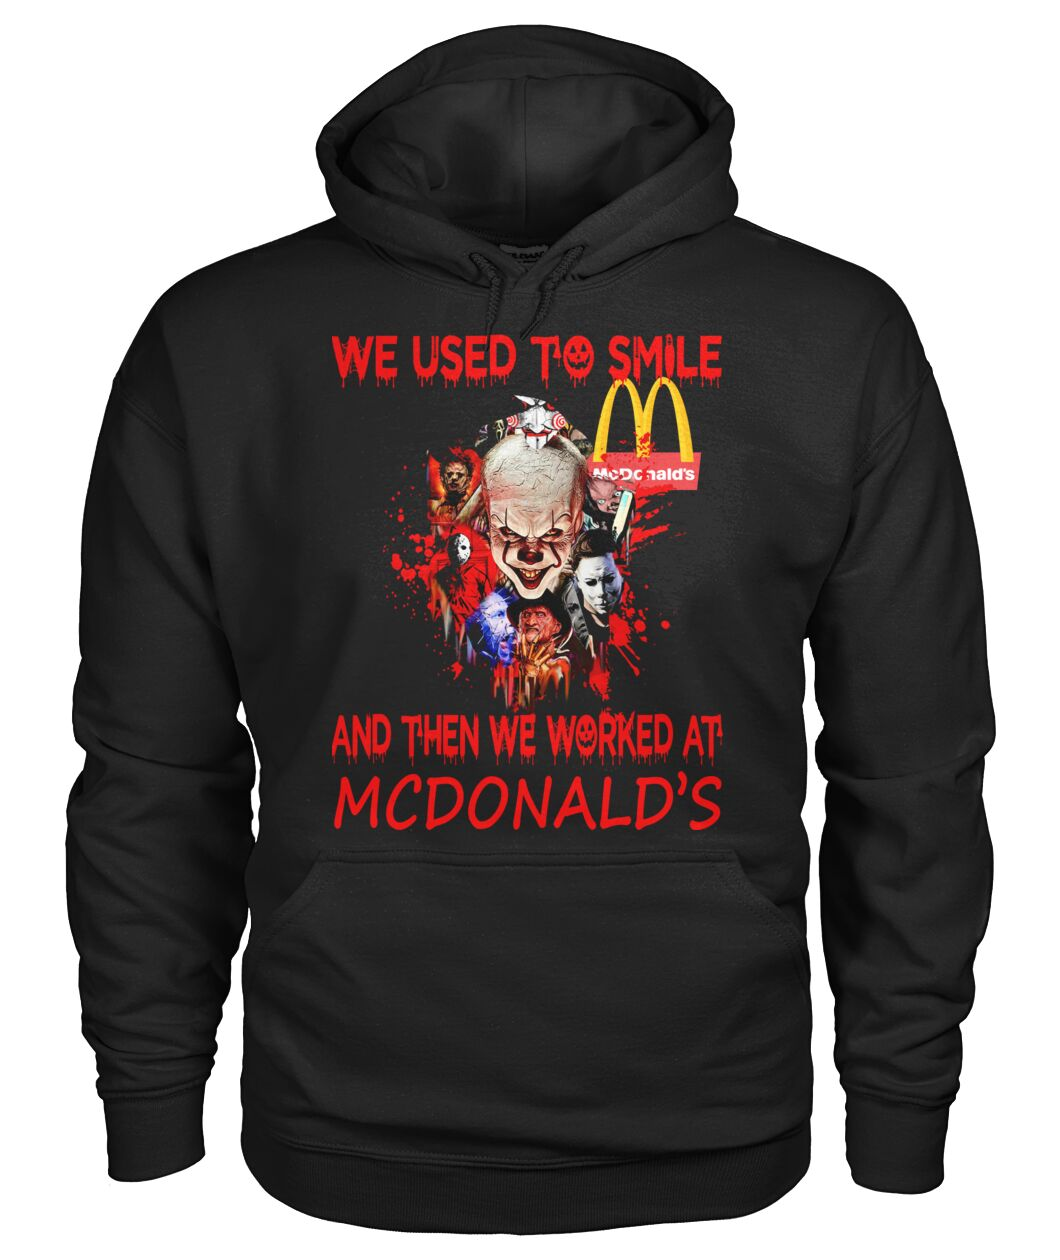 Amazing We Used To Smile And Then We Worked At Mcdonald's Shirt